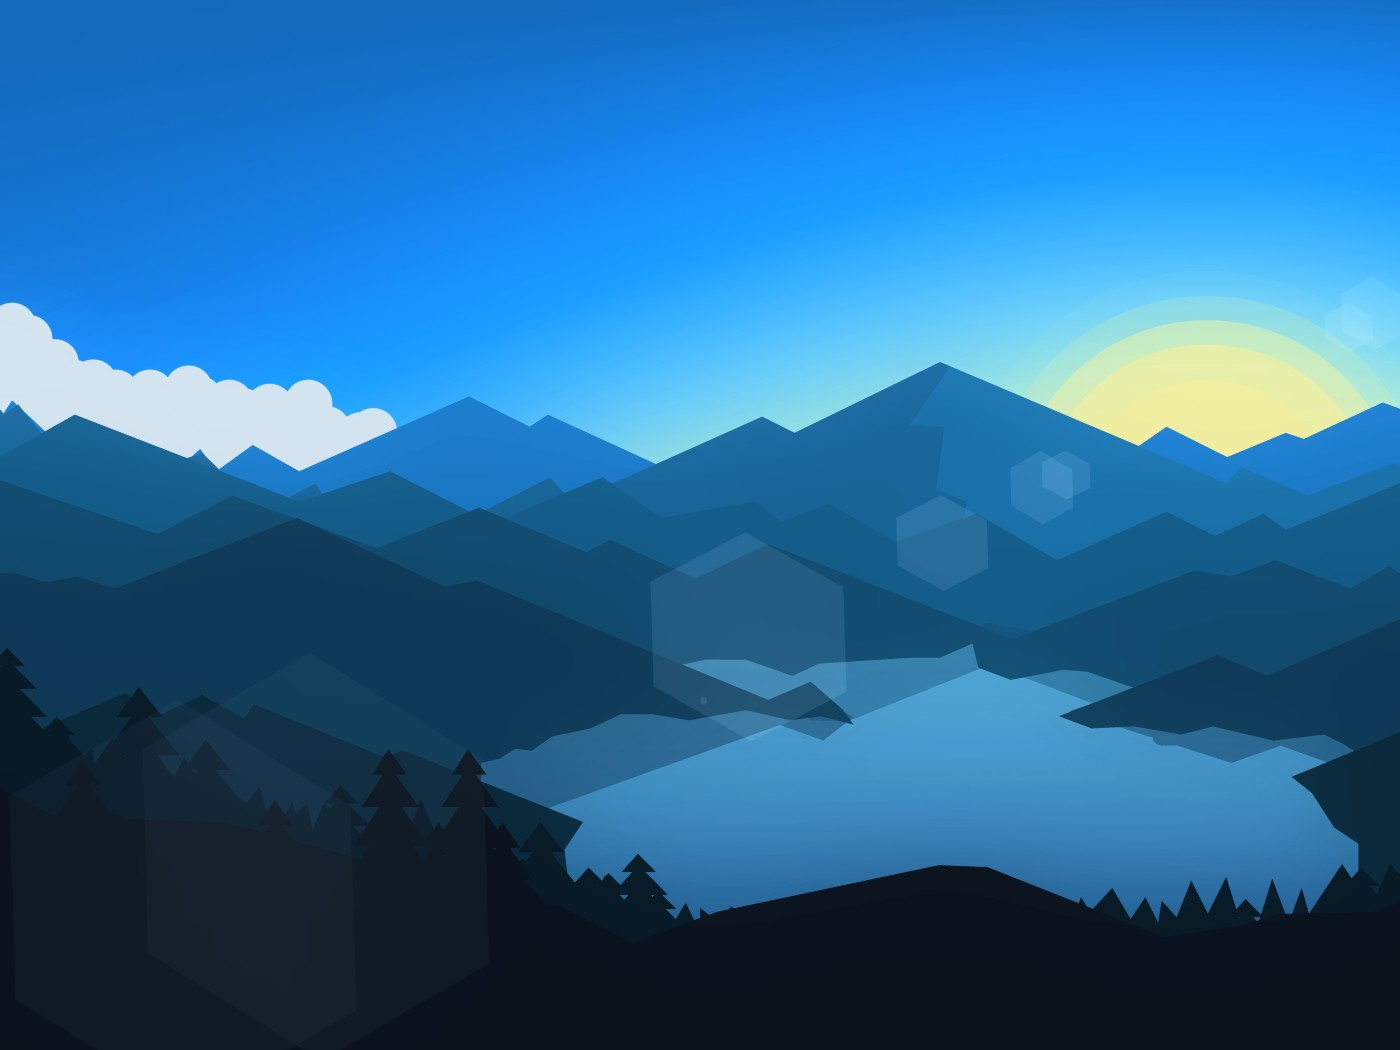 Forest Mountains Sunset Cool Weather Minimalism Hd 8k